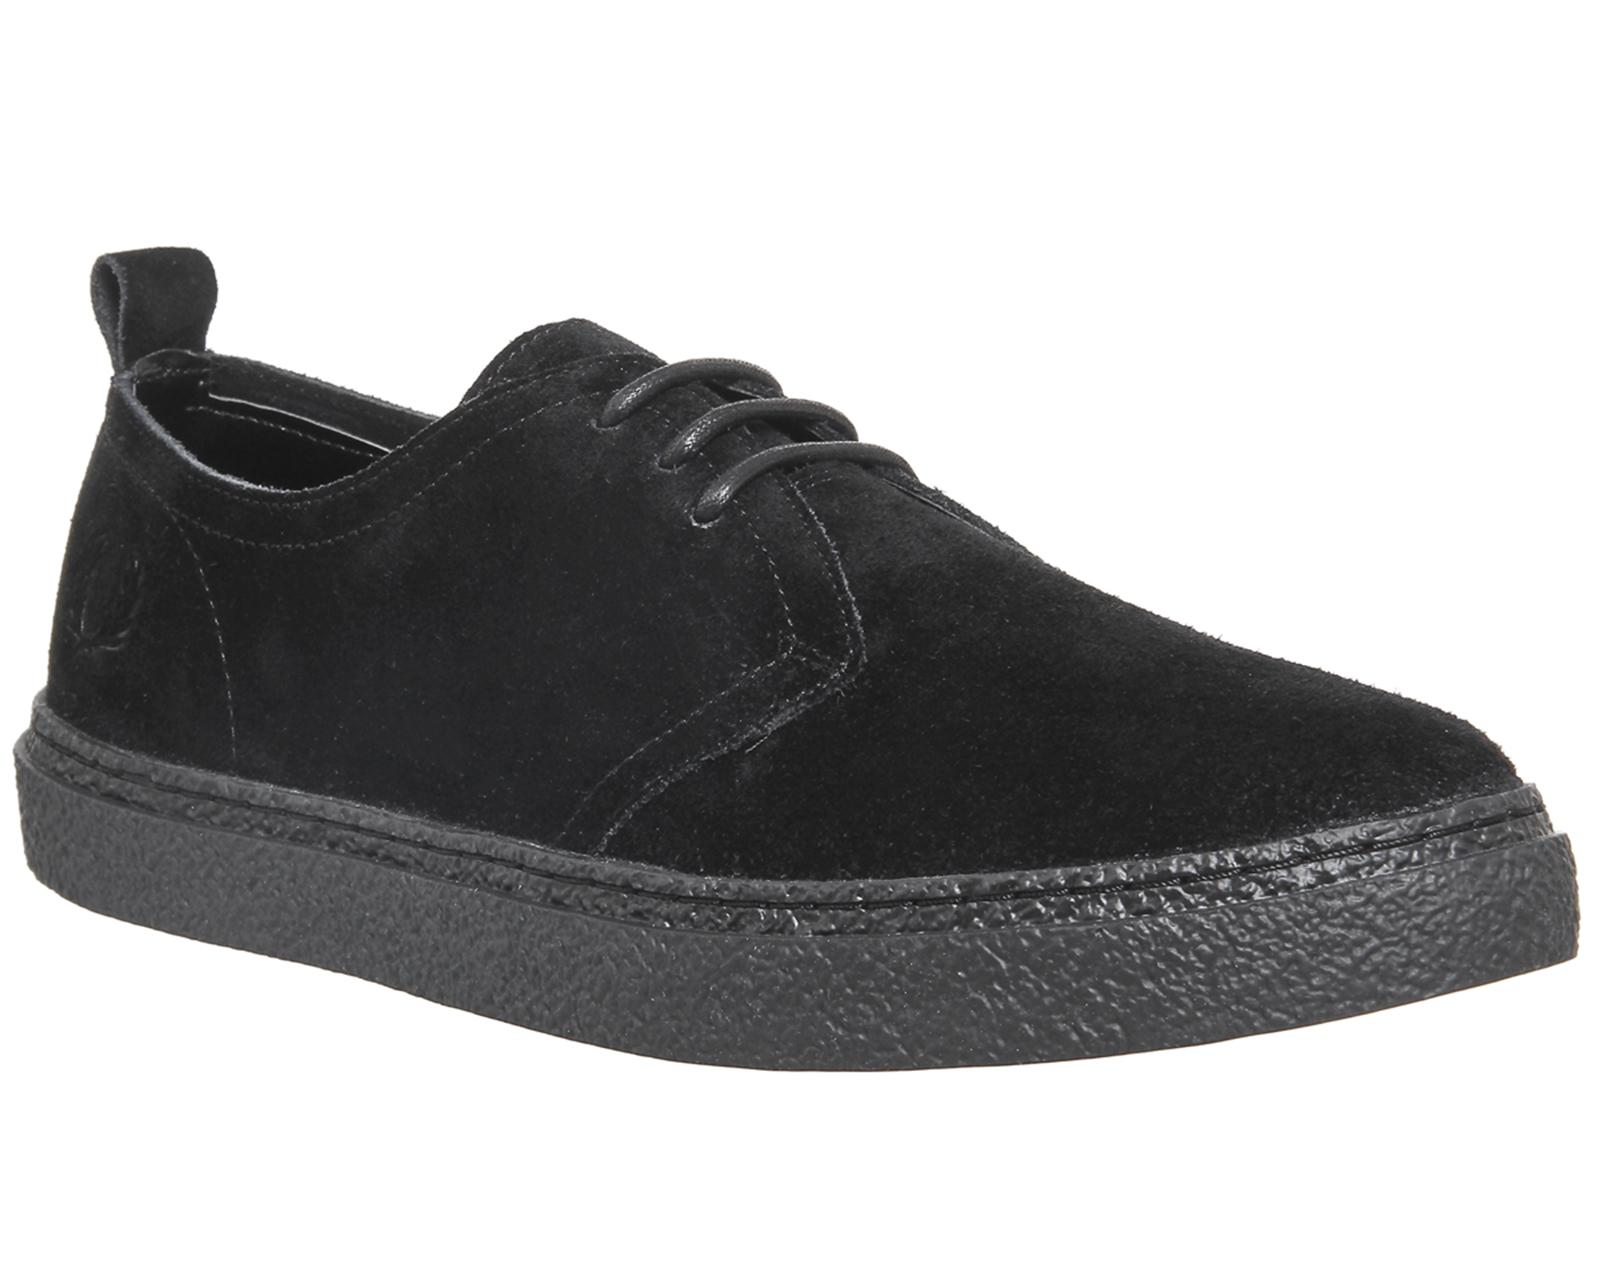 Fred Perry Suede Linden Shoes in Black